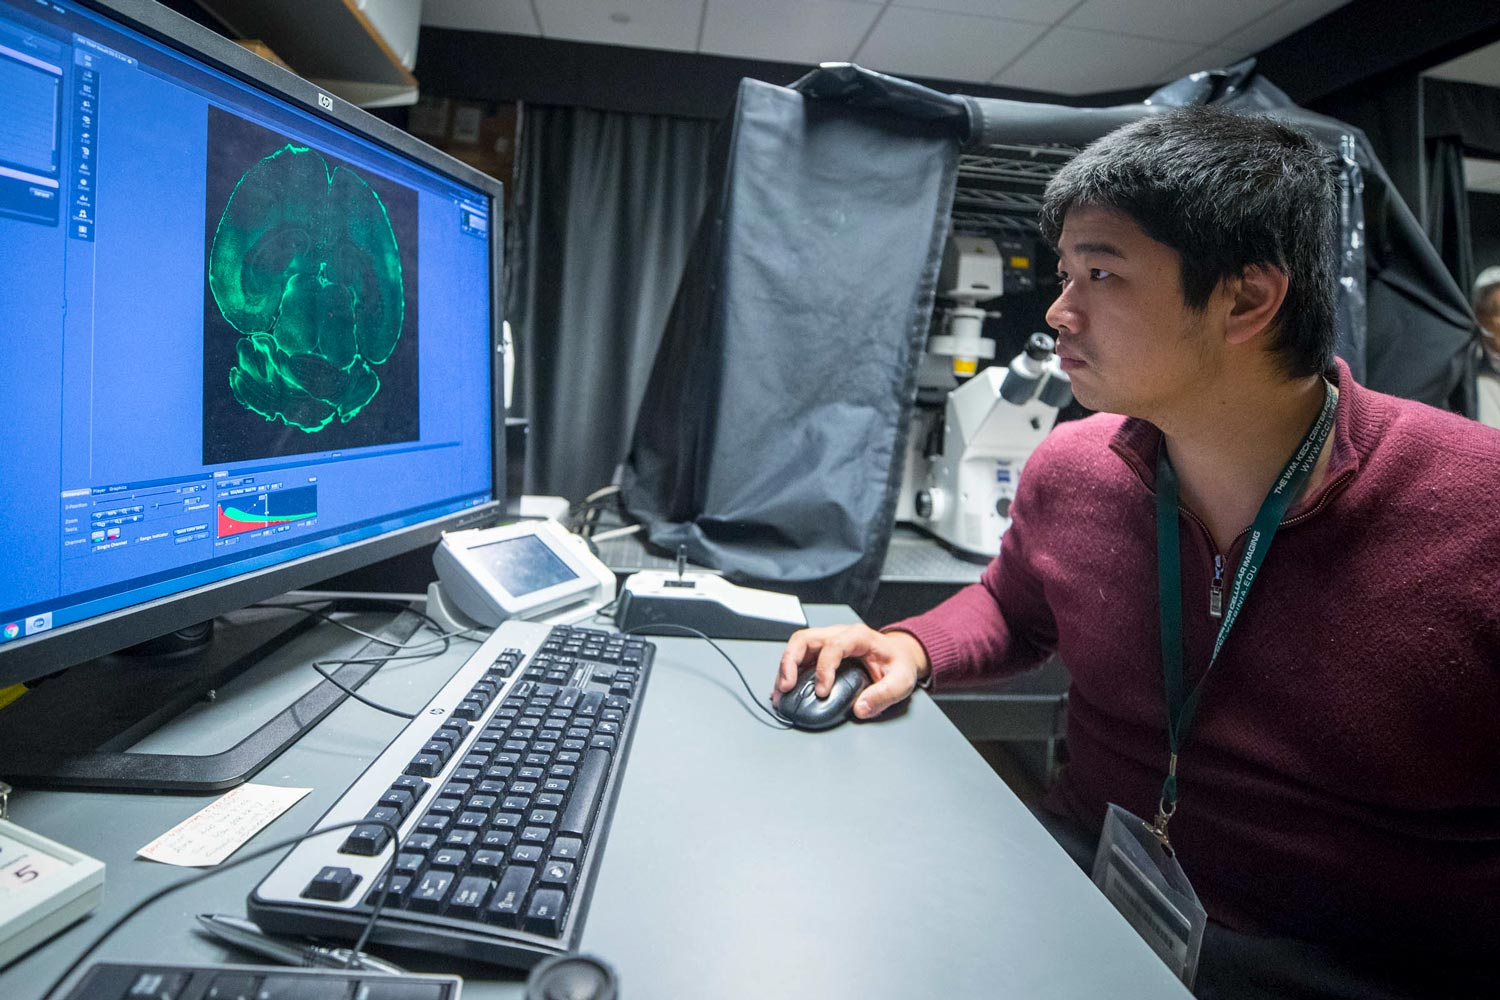 The center's technology allows extreme high-resolution visualizations of the inner workings of cells.